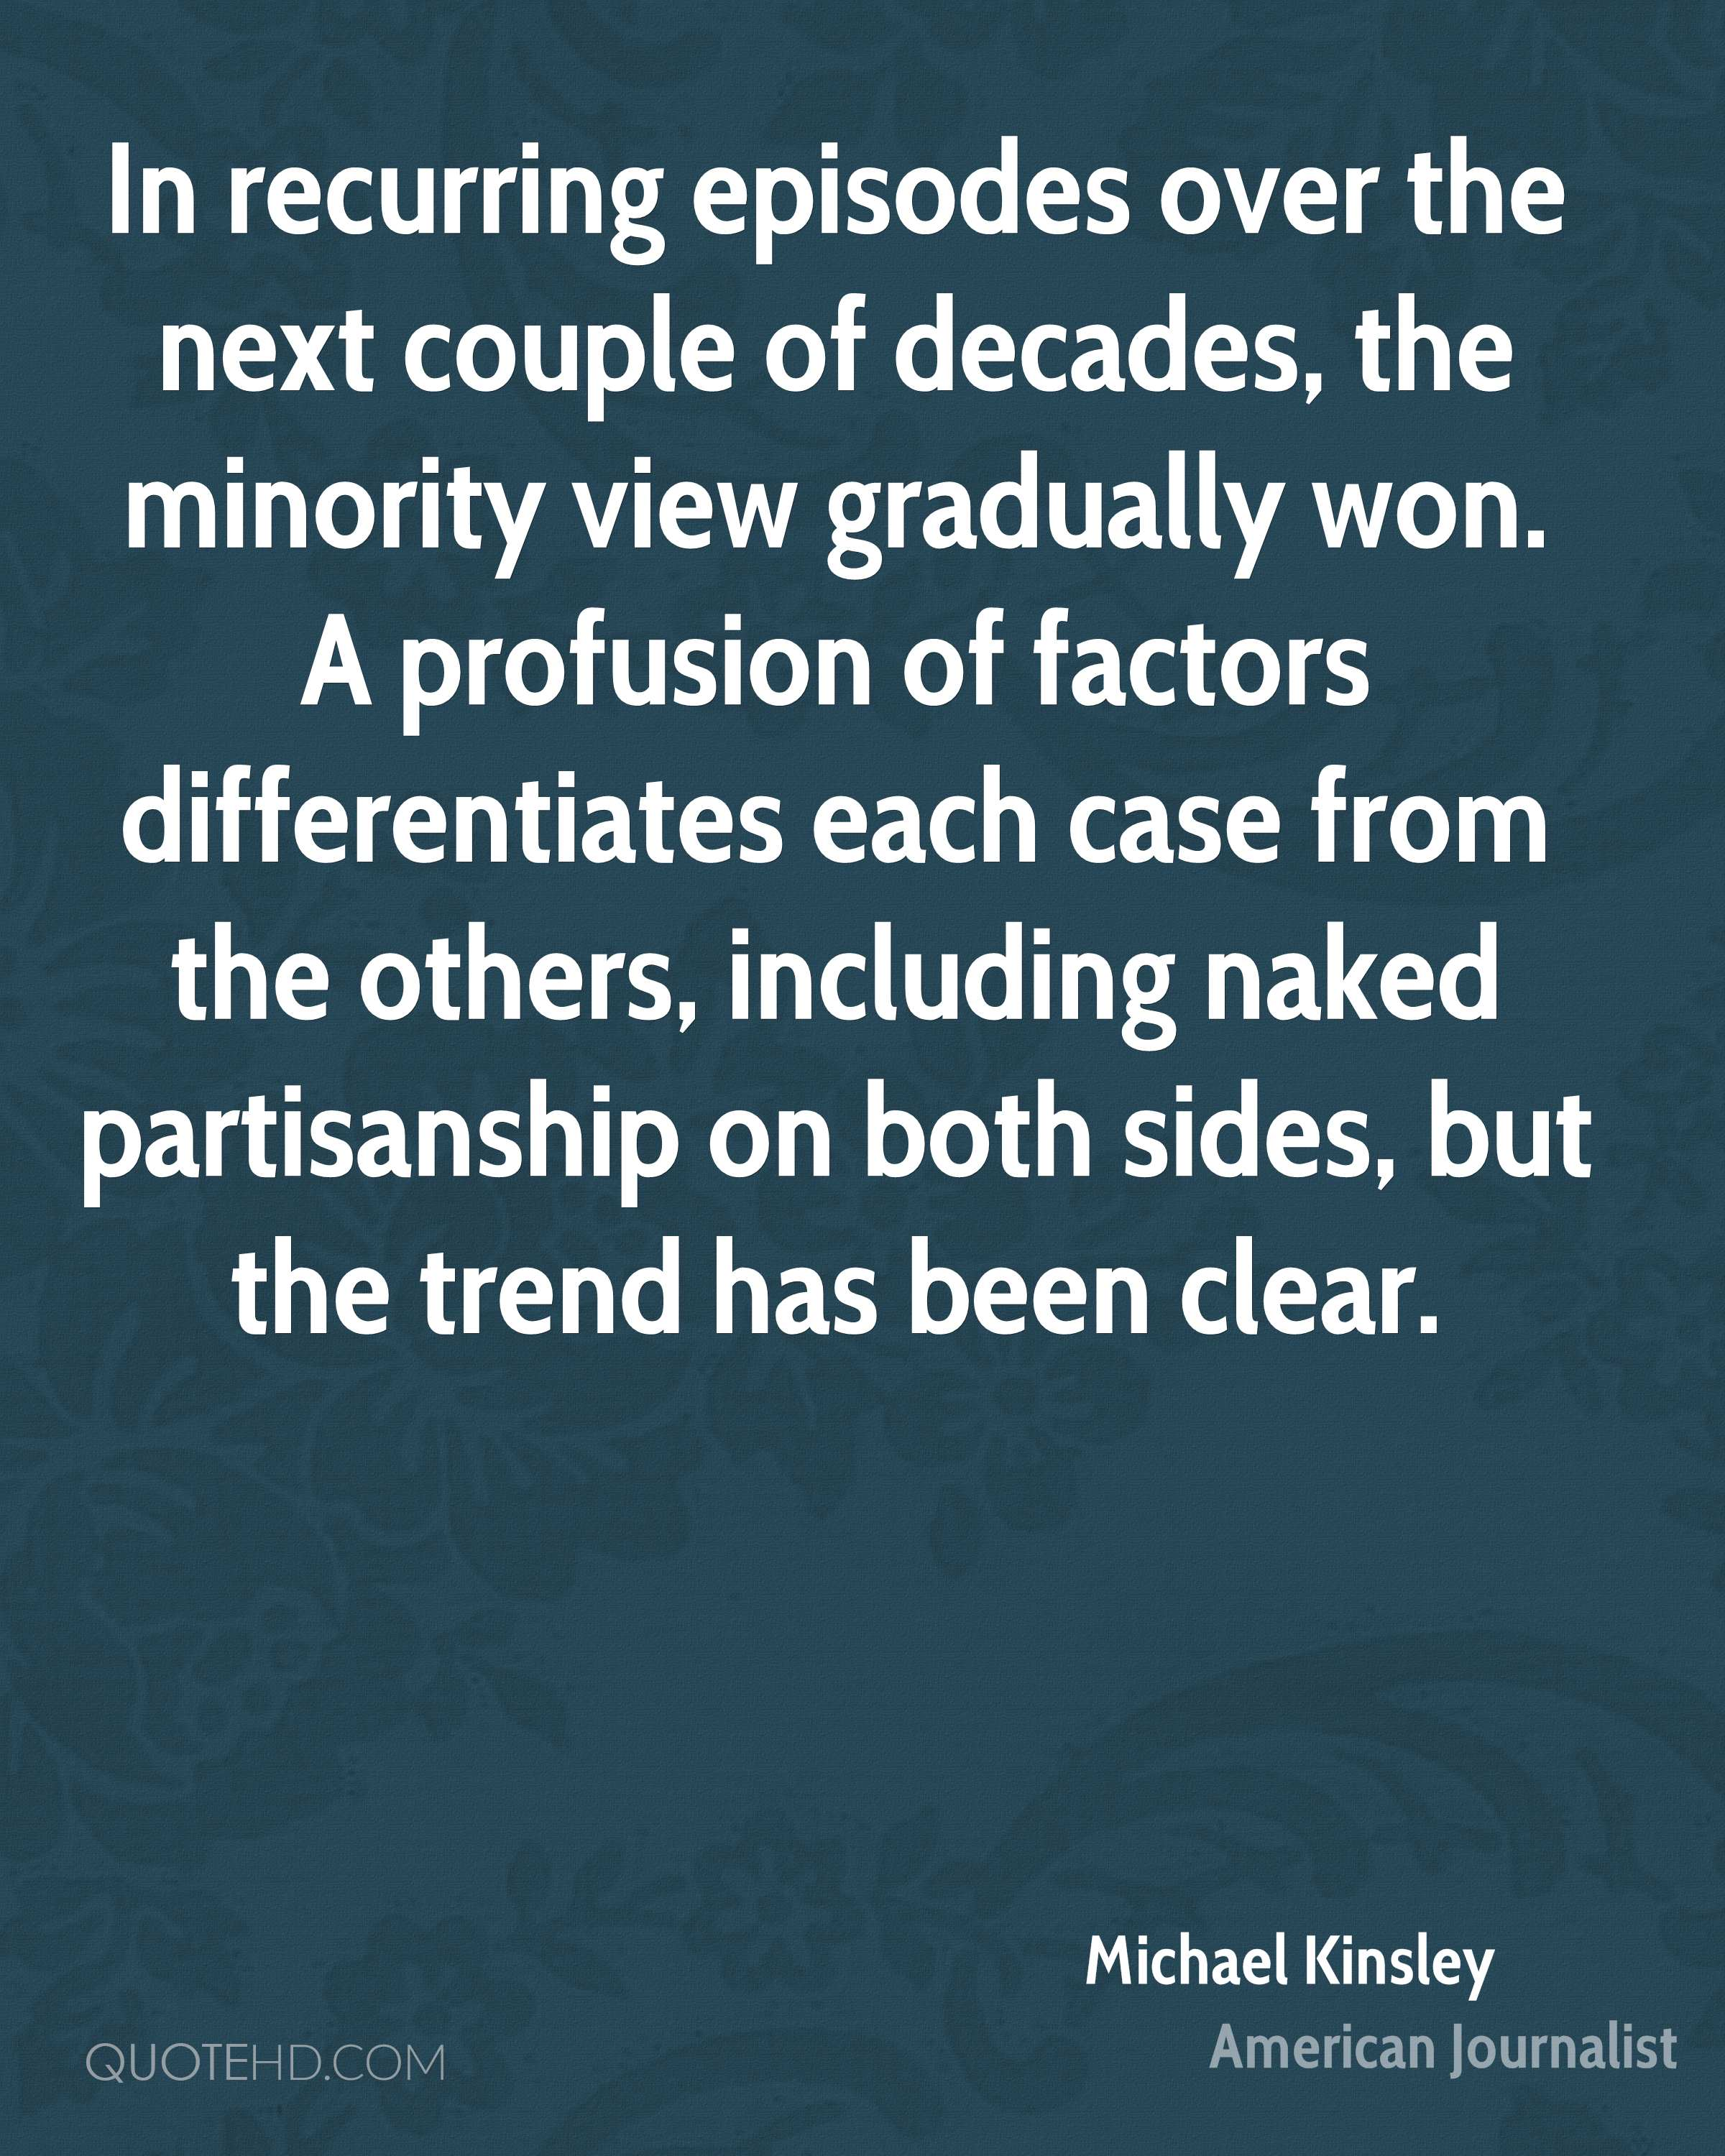 In recurring episodes over the next couple of decades, the minority view gradually won. A profusion of factors differentiates each case from the others, including naked partisanship on both sides, but the trend has been clear.